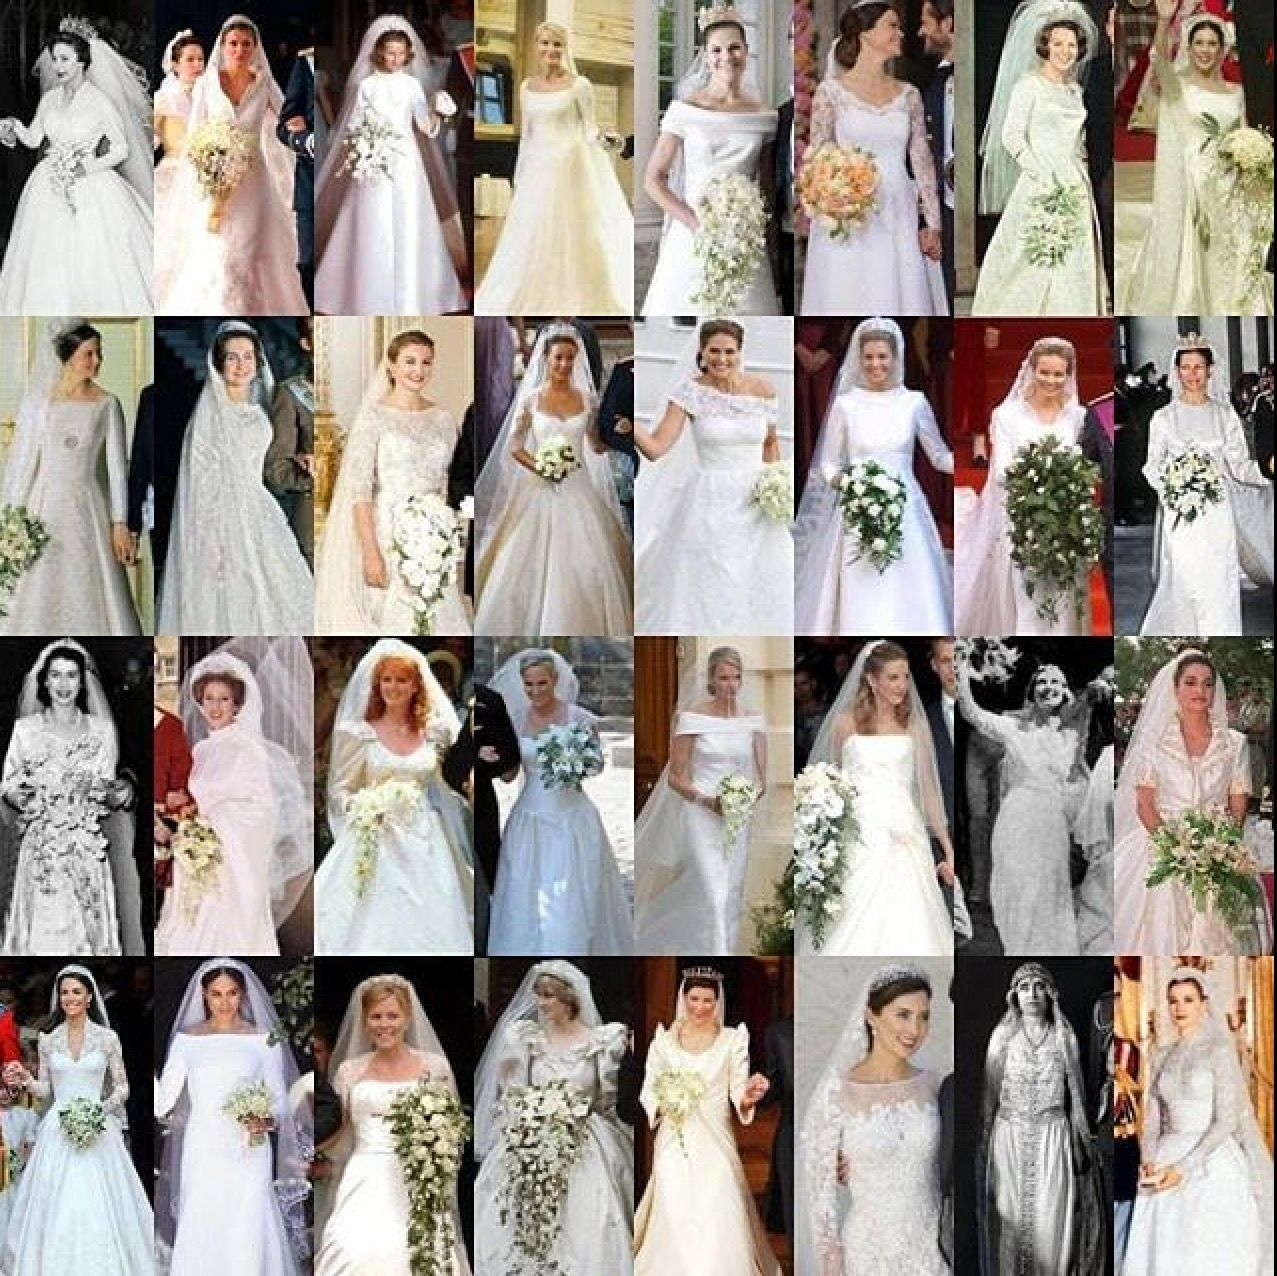 All The Royal Princess's Brides